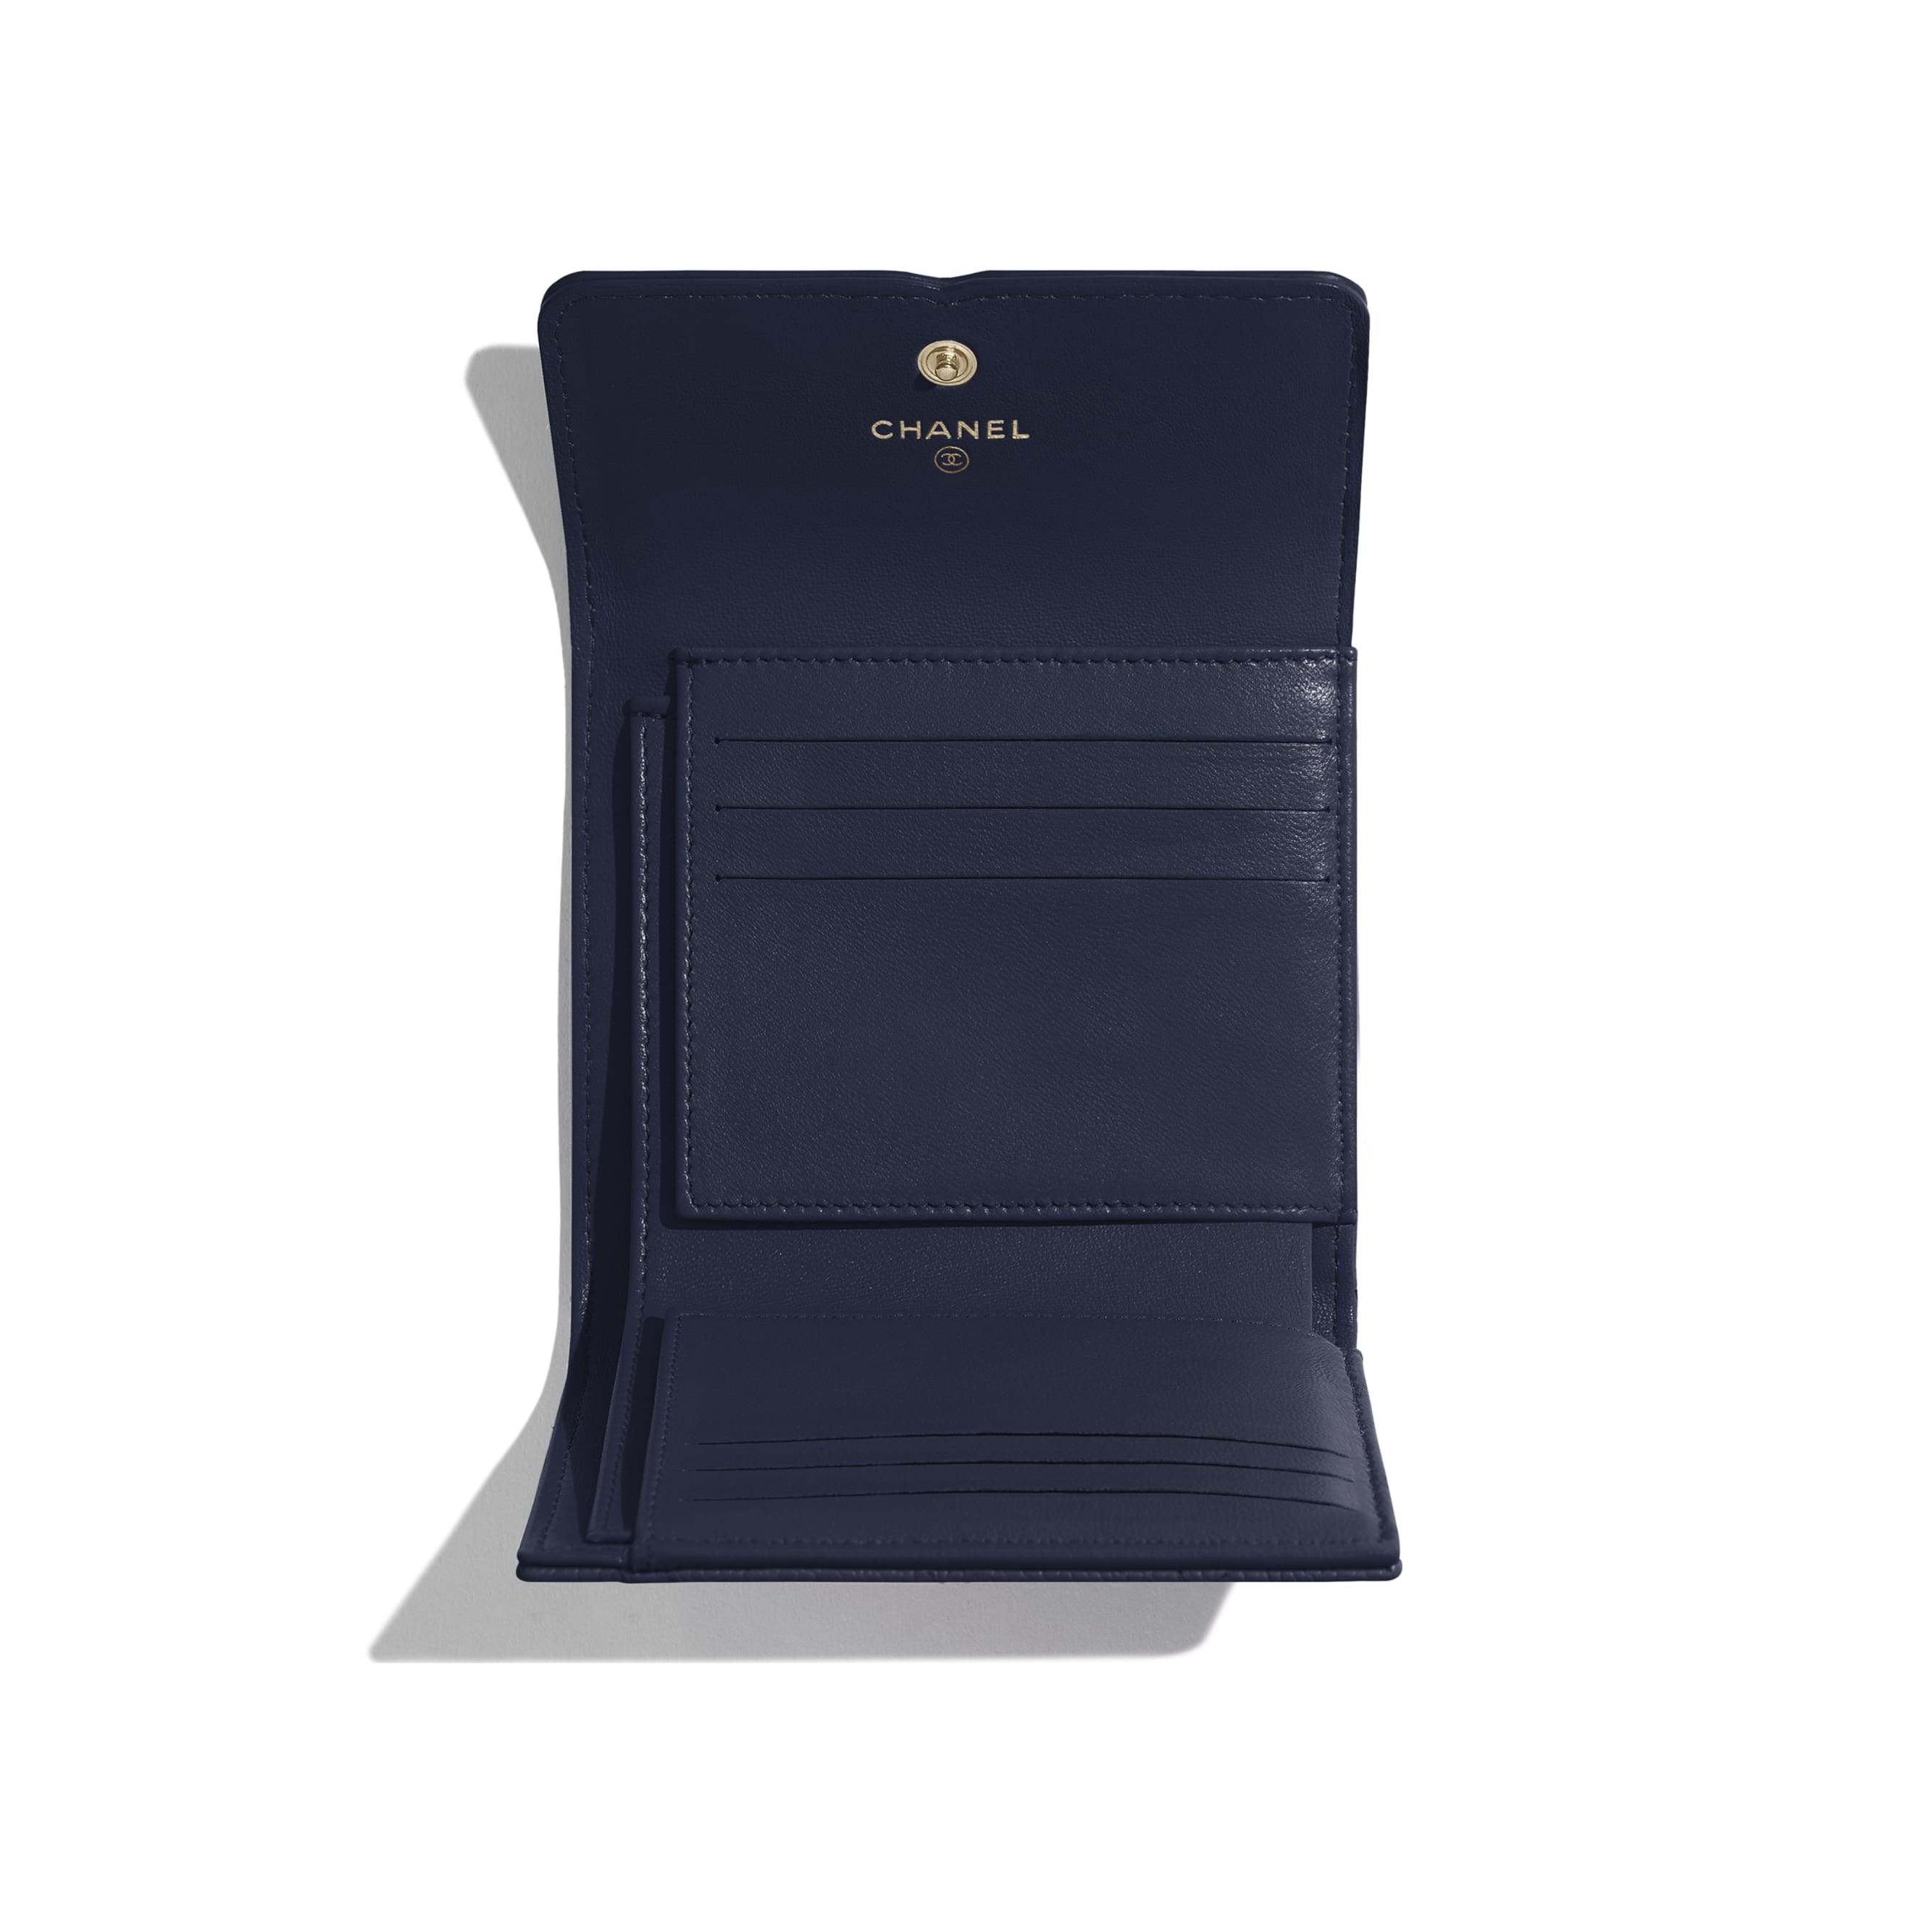 Small Flap Wallet - Navy Blue - Grained Calfskin & Gold-Tone Metal - Other view - see standard sized version